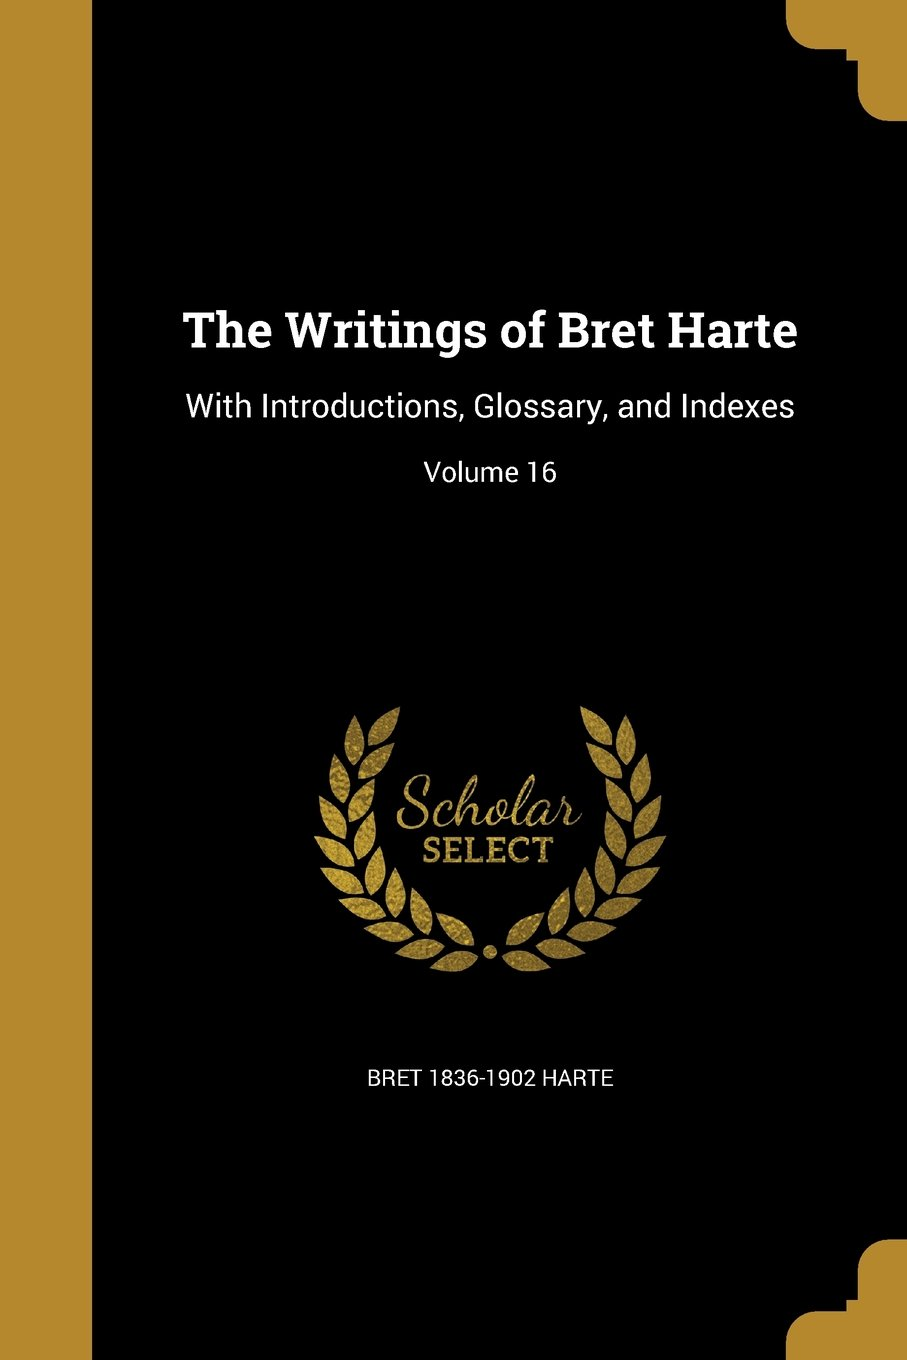 Download The Writings of Bret Harte: With Introductions, Glossary, and Indexes; Volume 16 ebook